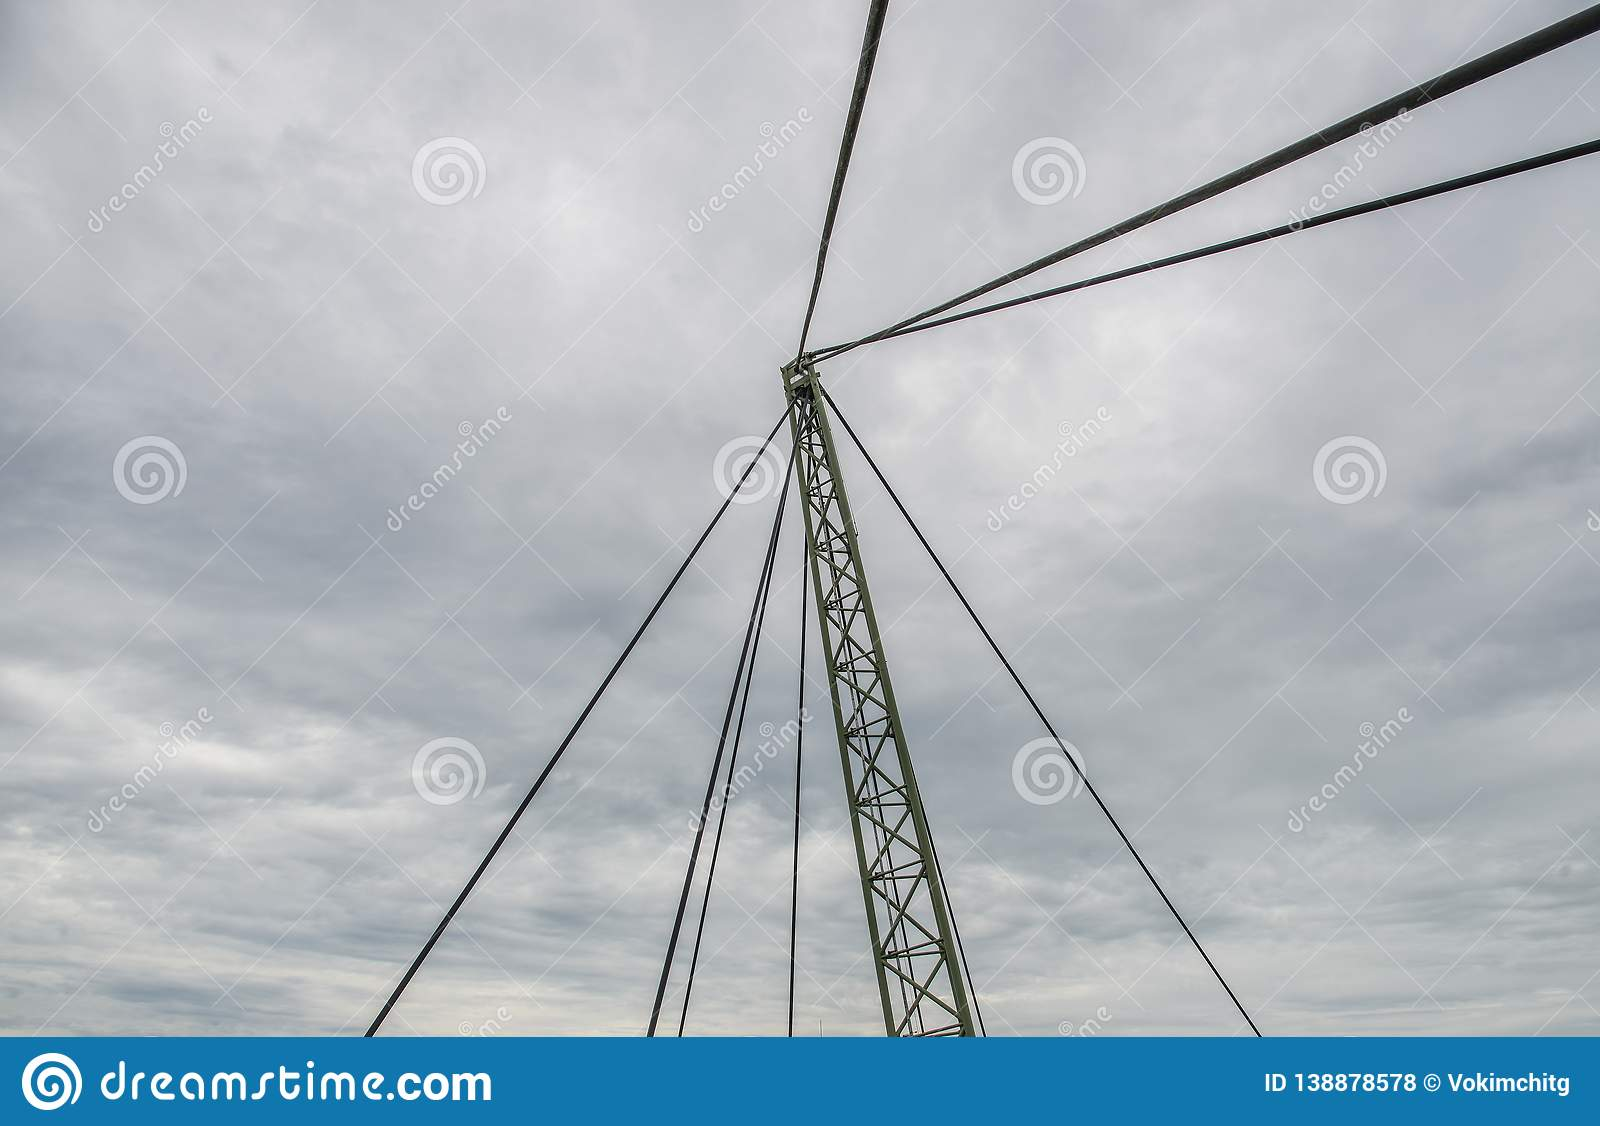 Parallel guyes of a cable-stayed bridge